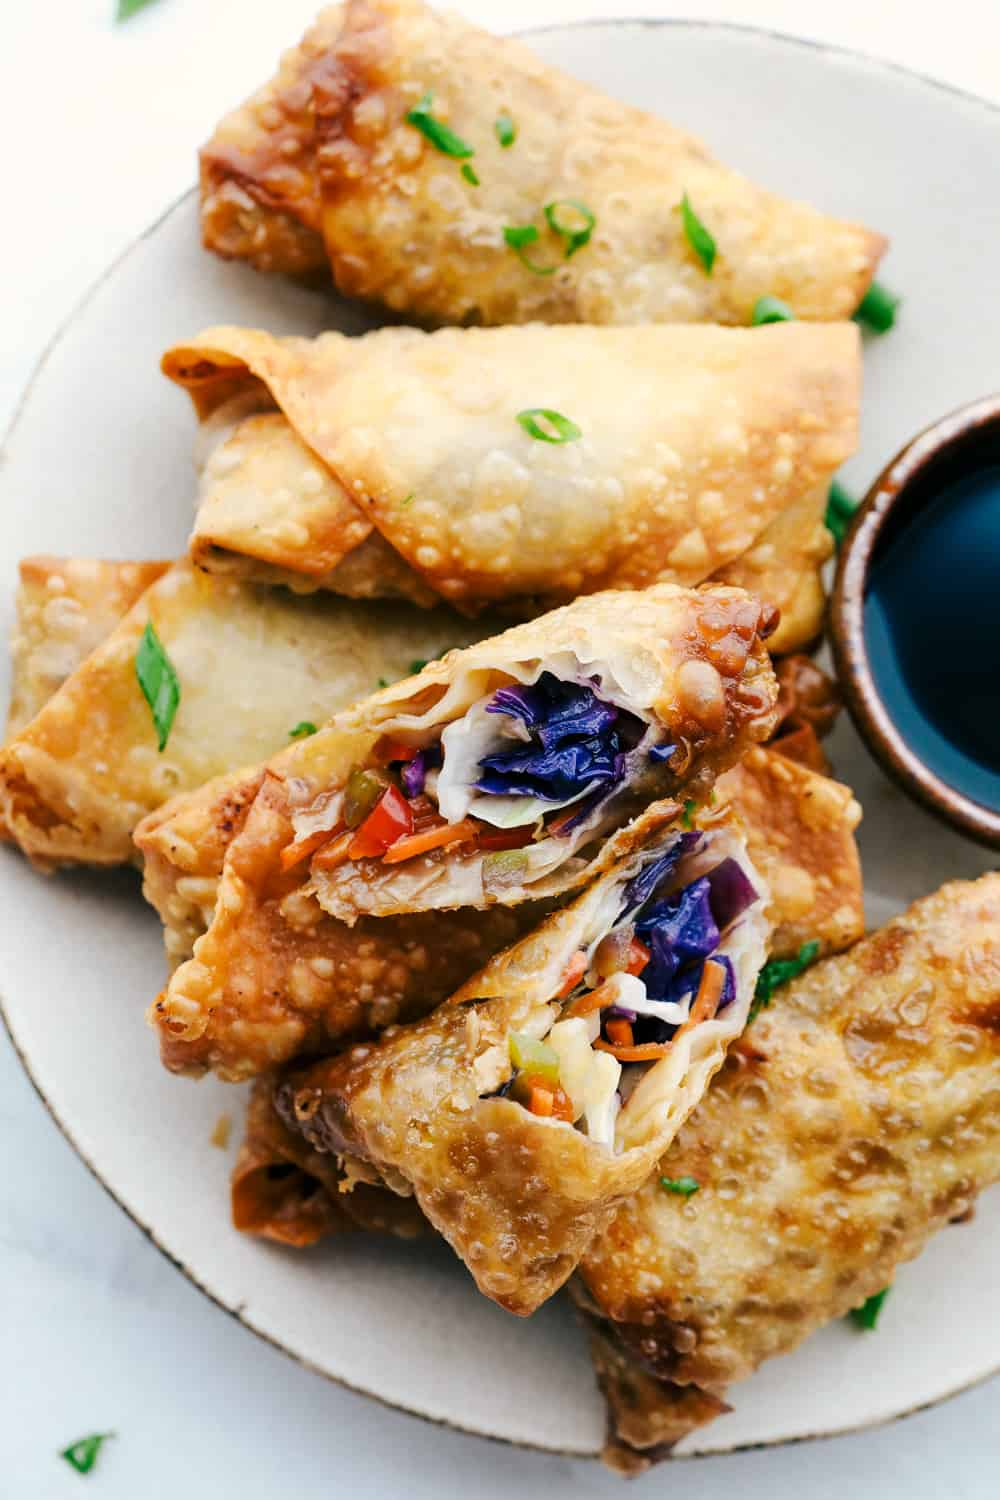 Vegetable Egg Rolls, crispy colorful crunchy veggies fried to perfection.